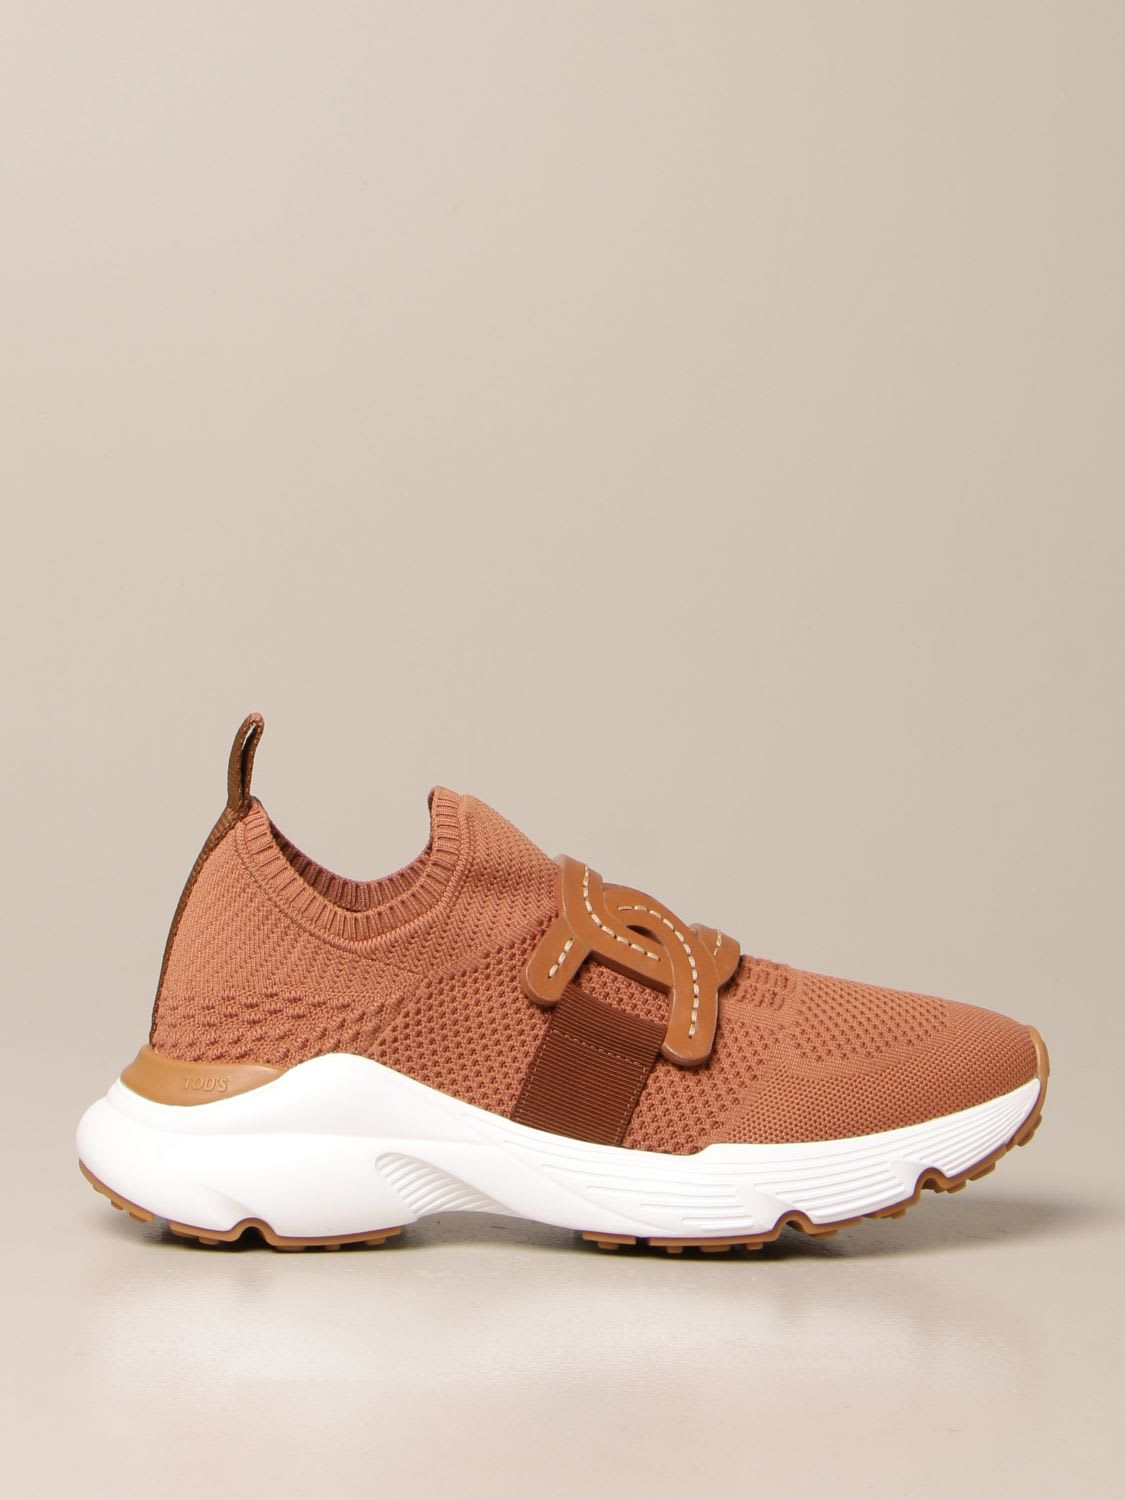 Tods Sneakers Tods Sneakers In Technical Knit